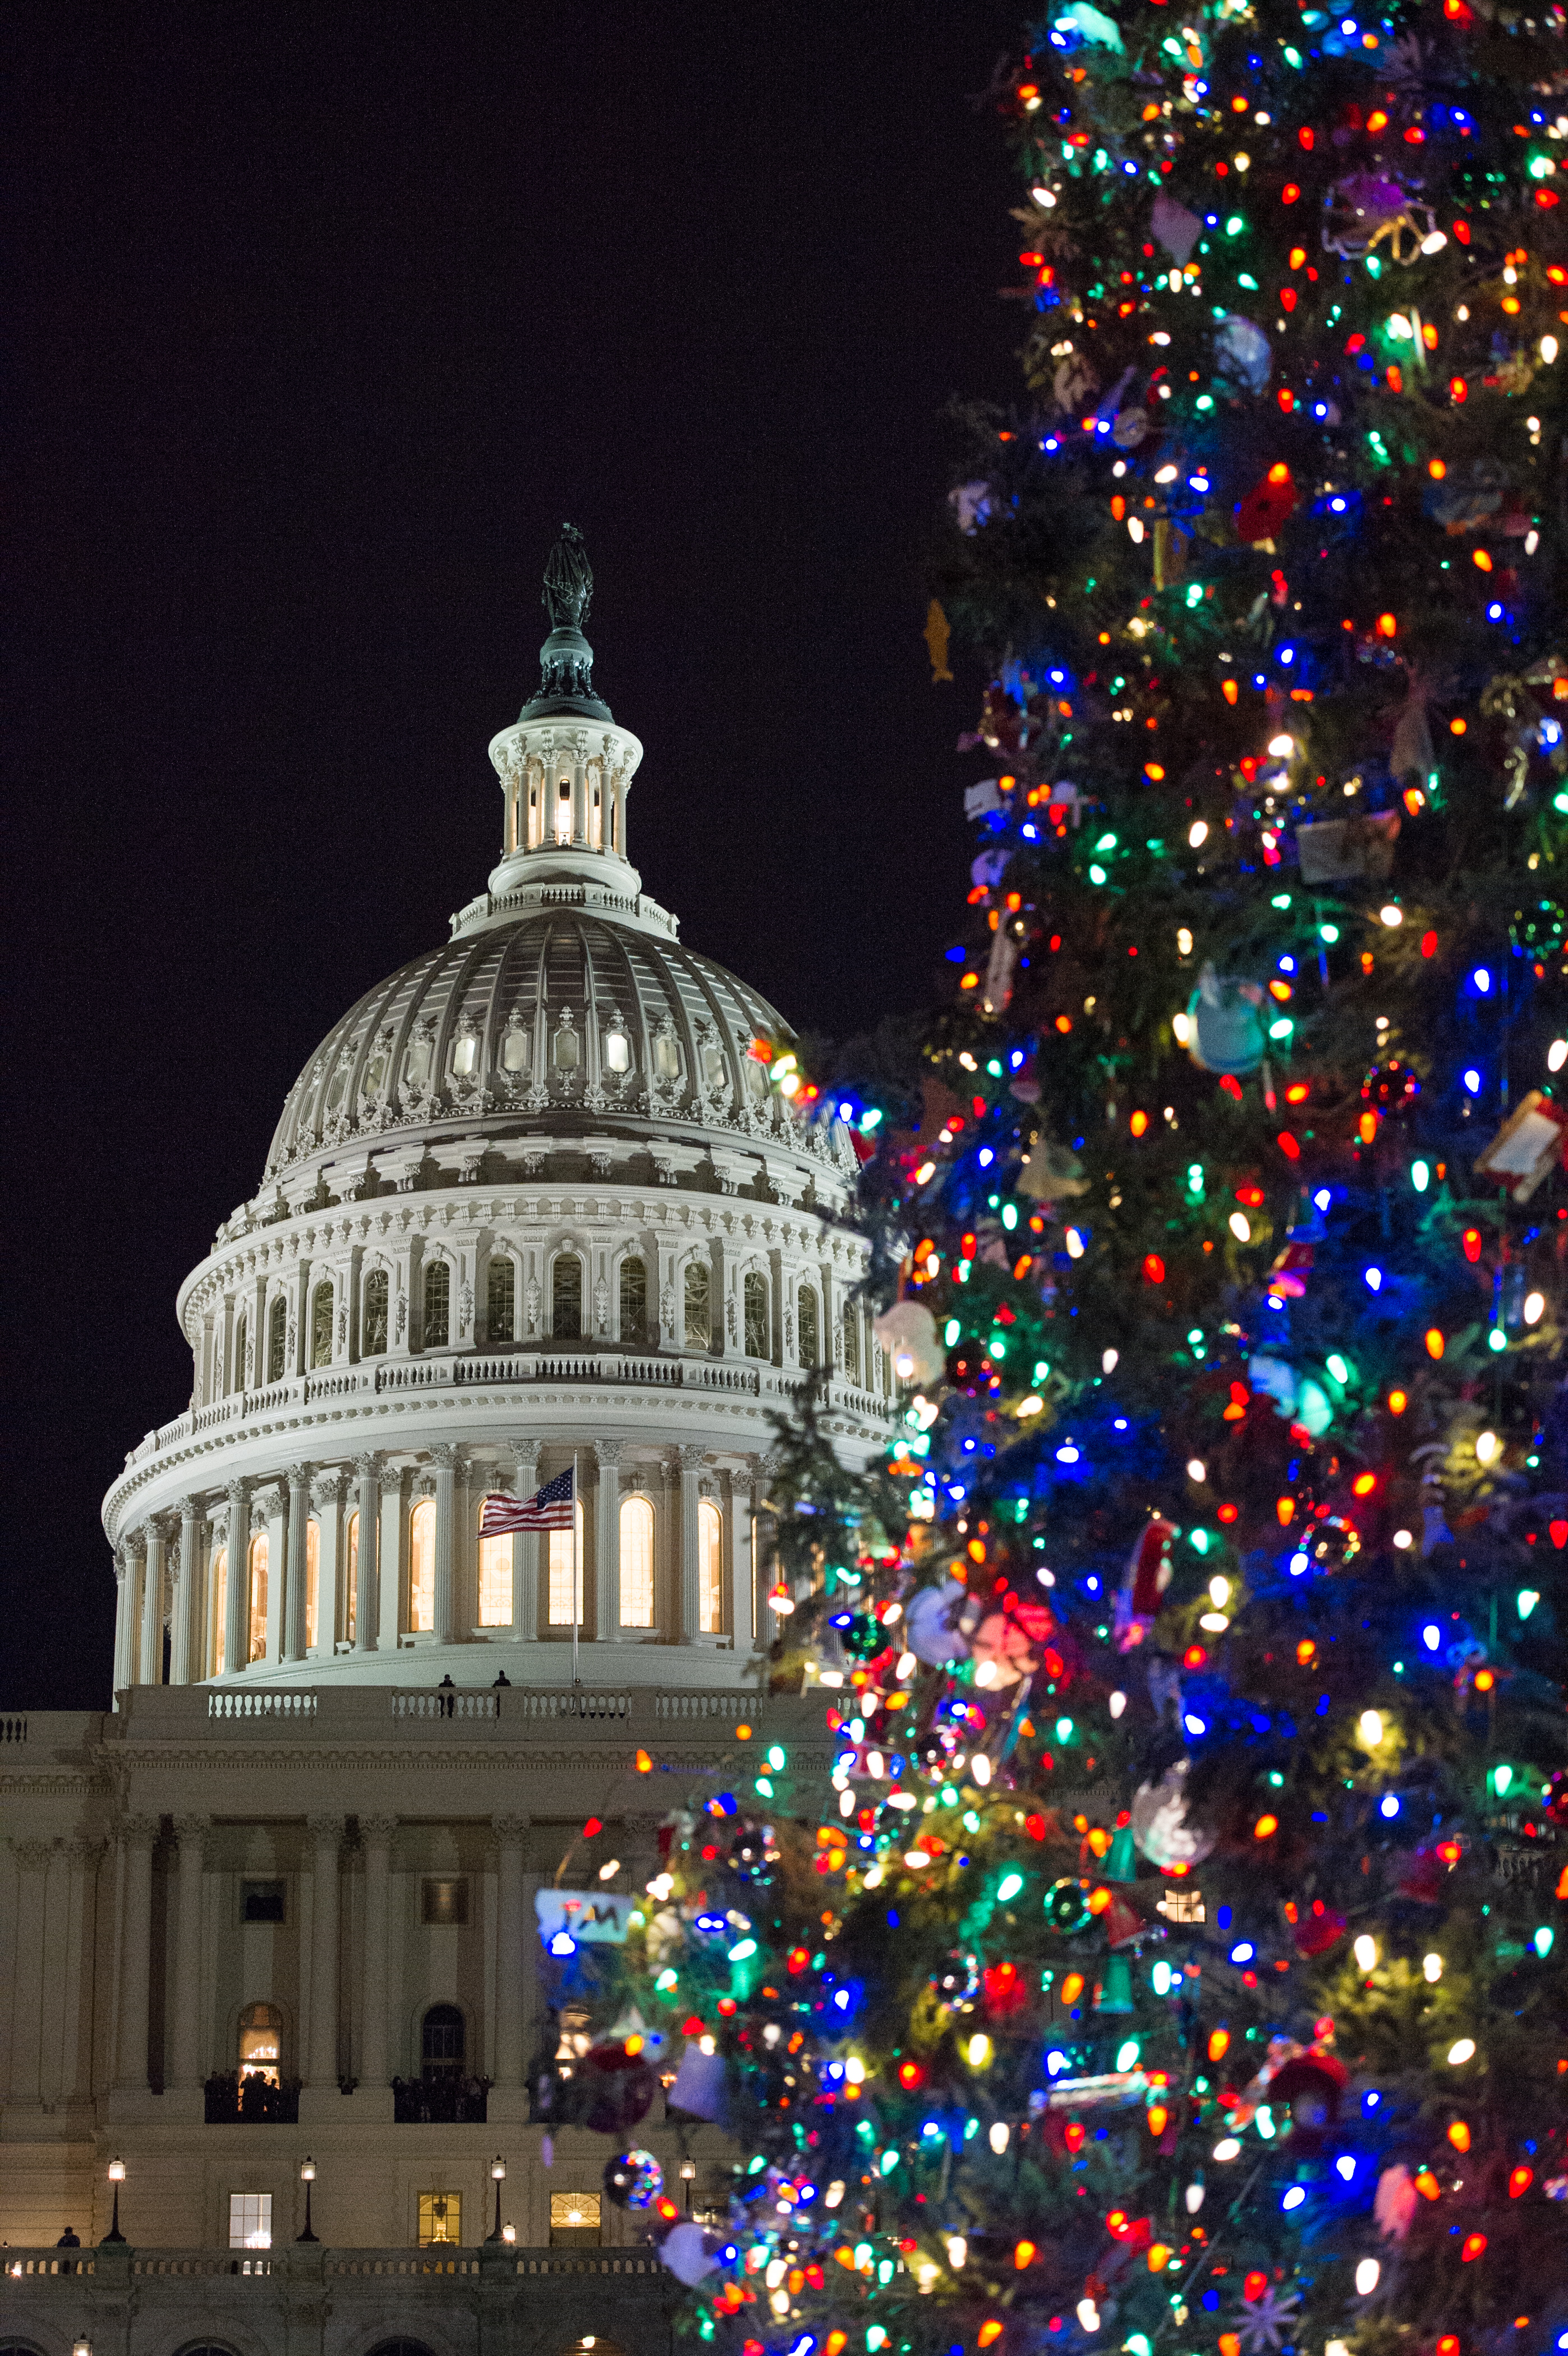 The 2017 Capitol Christmas Tree is a 79-foot-tall Engelmann Spruce from Kootenai National Forest